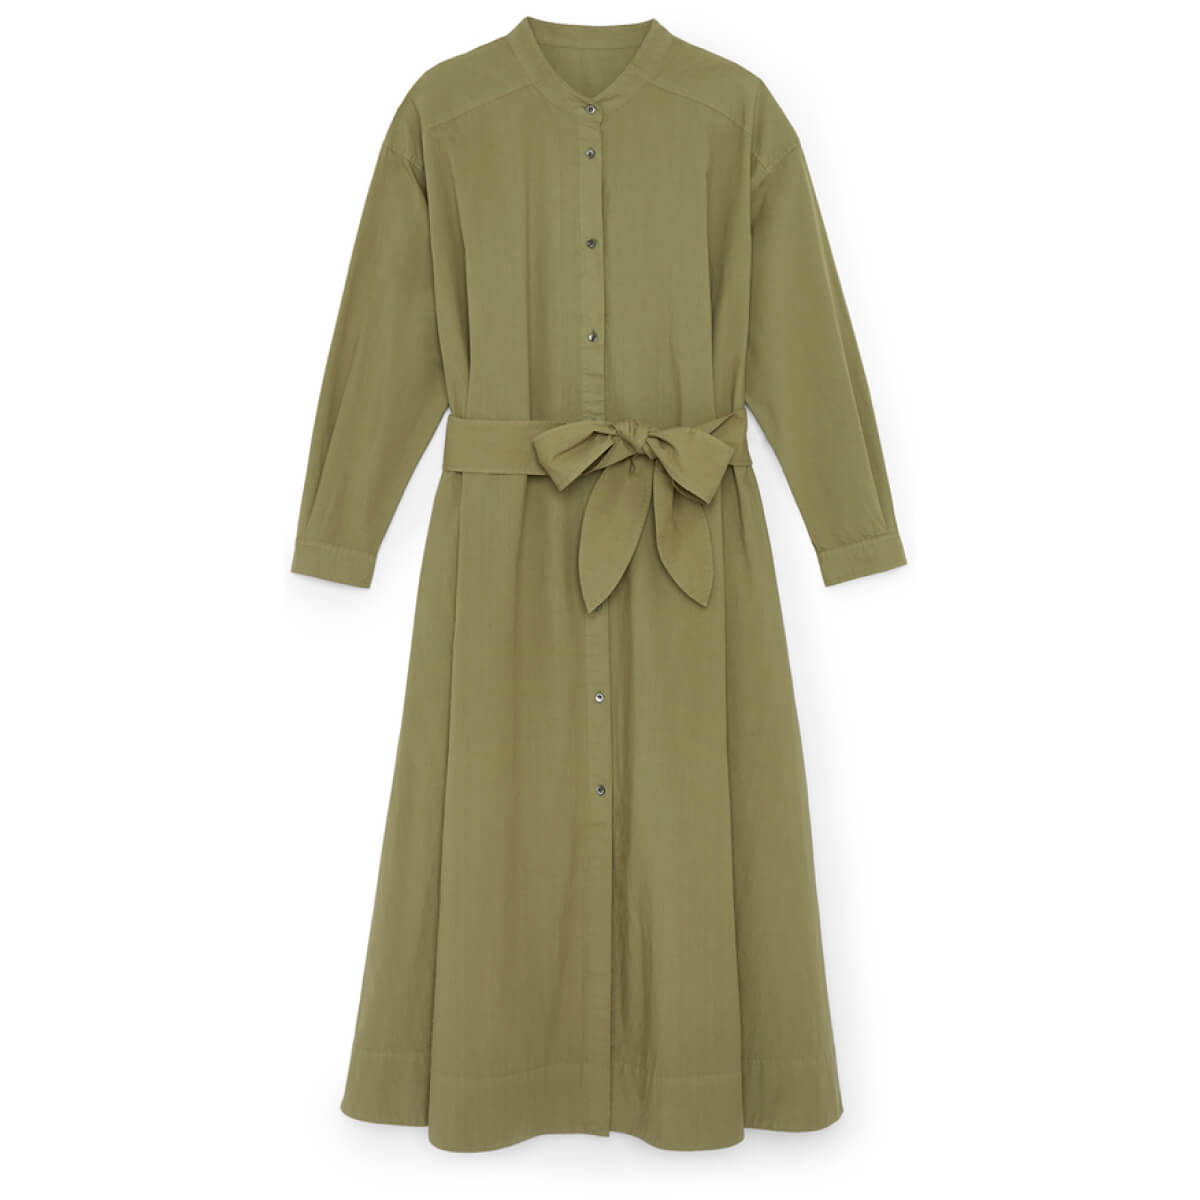 ALEX MILL SHIRTDRESS